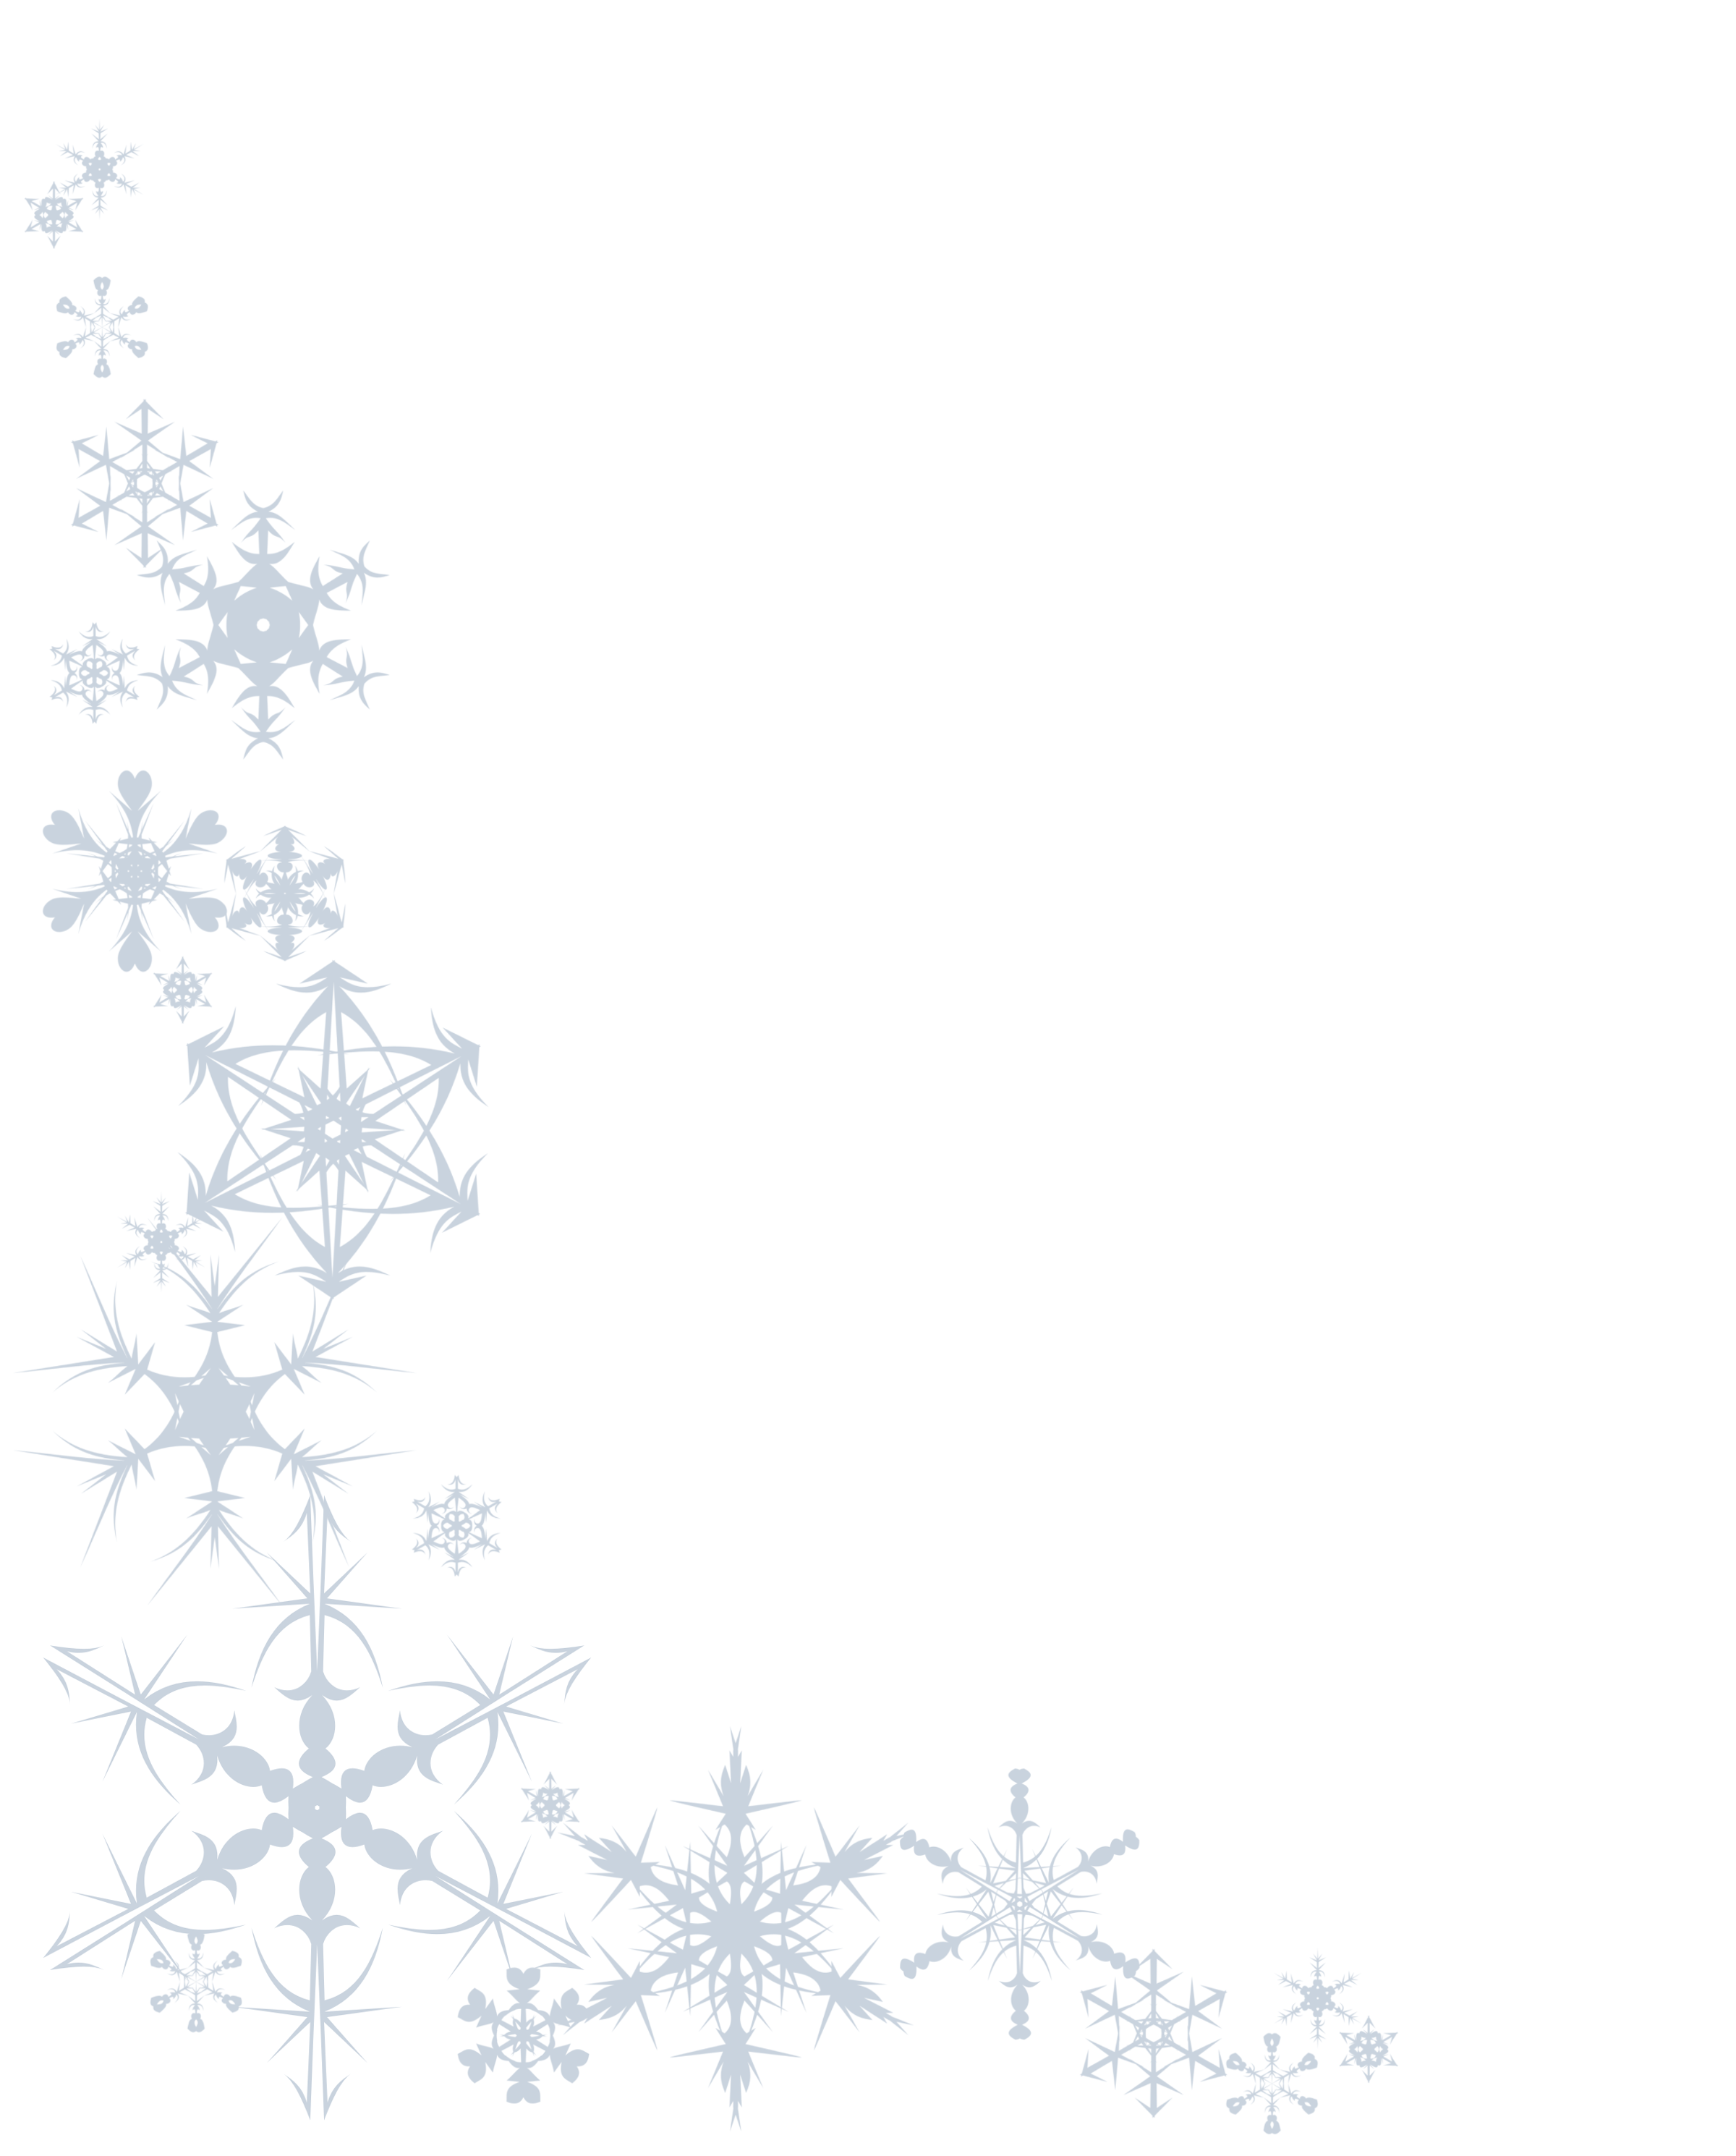 Snowflake Paper At Printables - Free Snowflake Border Clipart